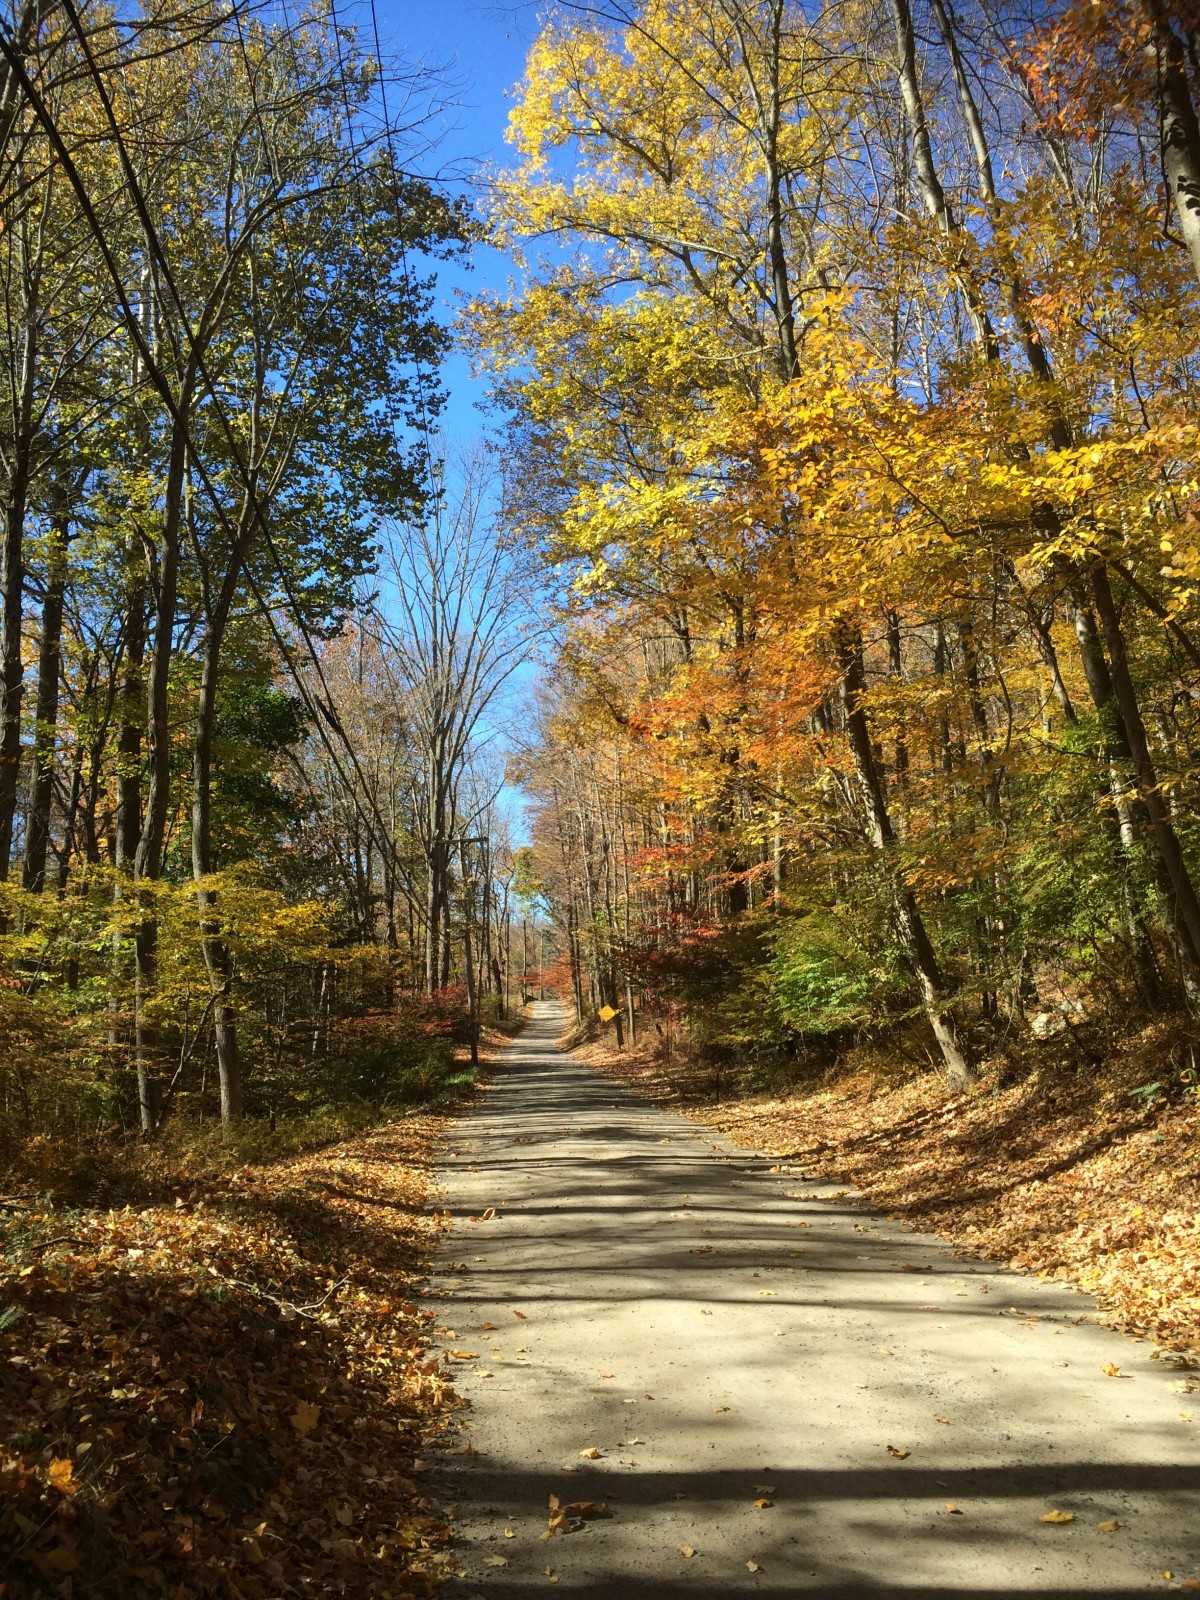 New England Fall Foliage Wallpaper Free Images Landscape Tree Nature Forest Path